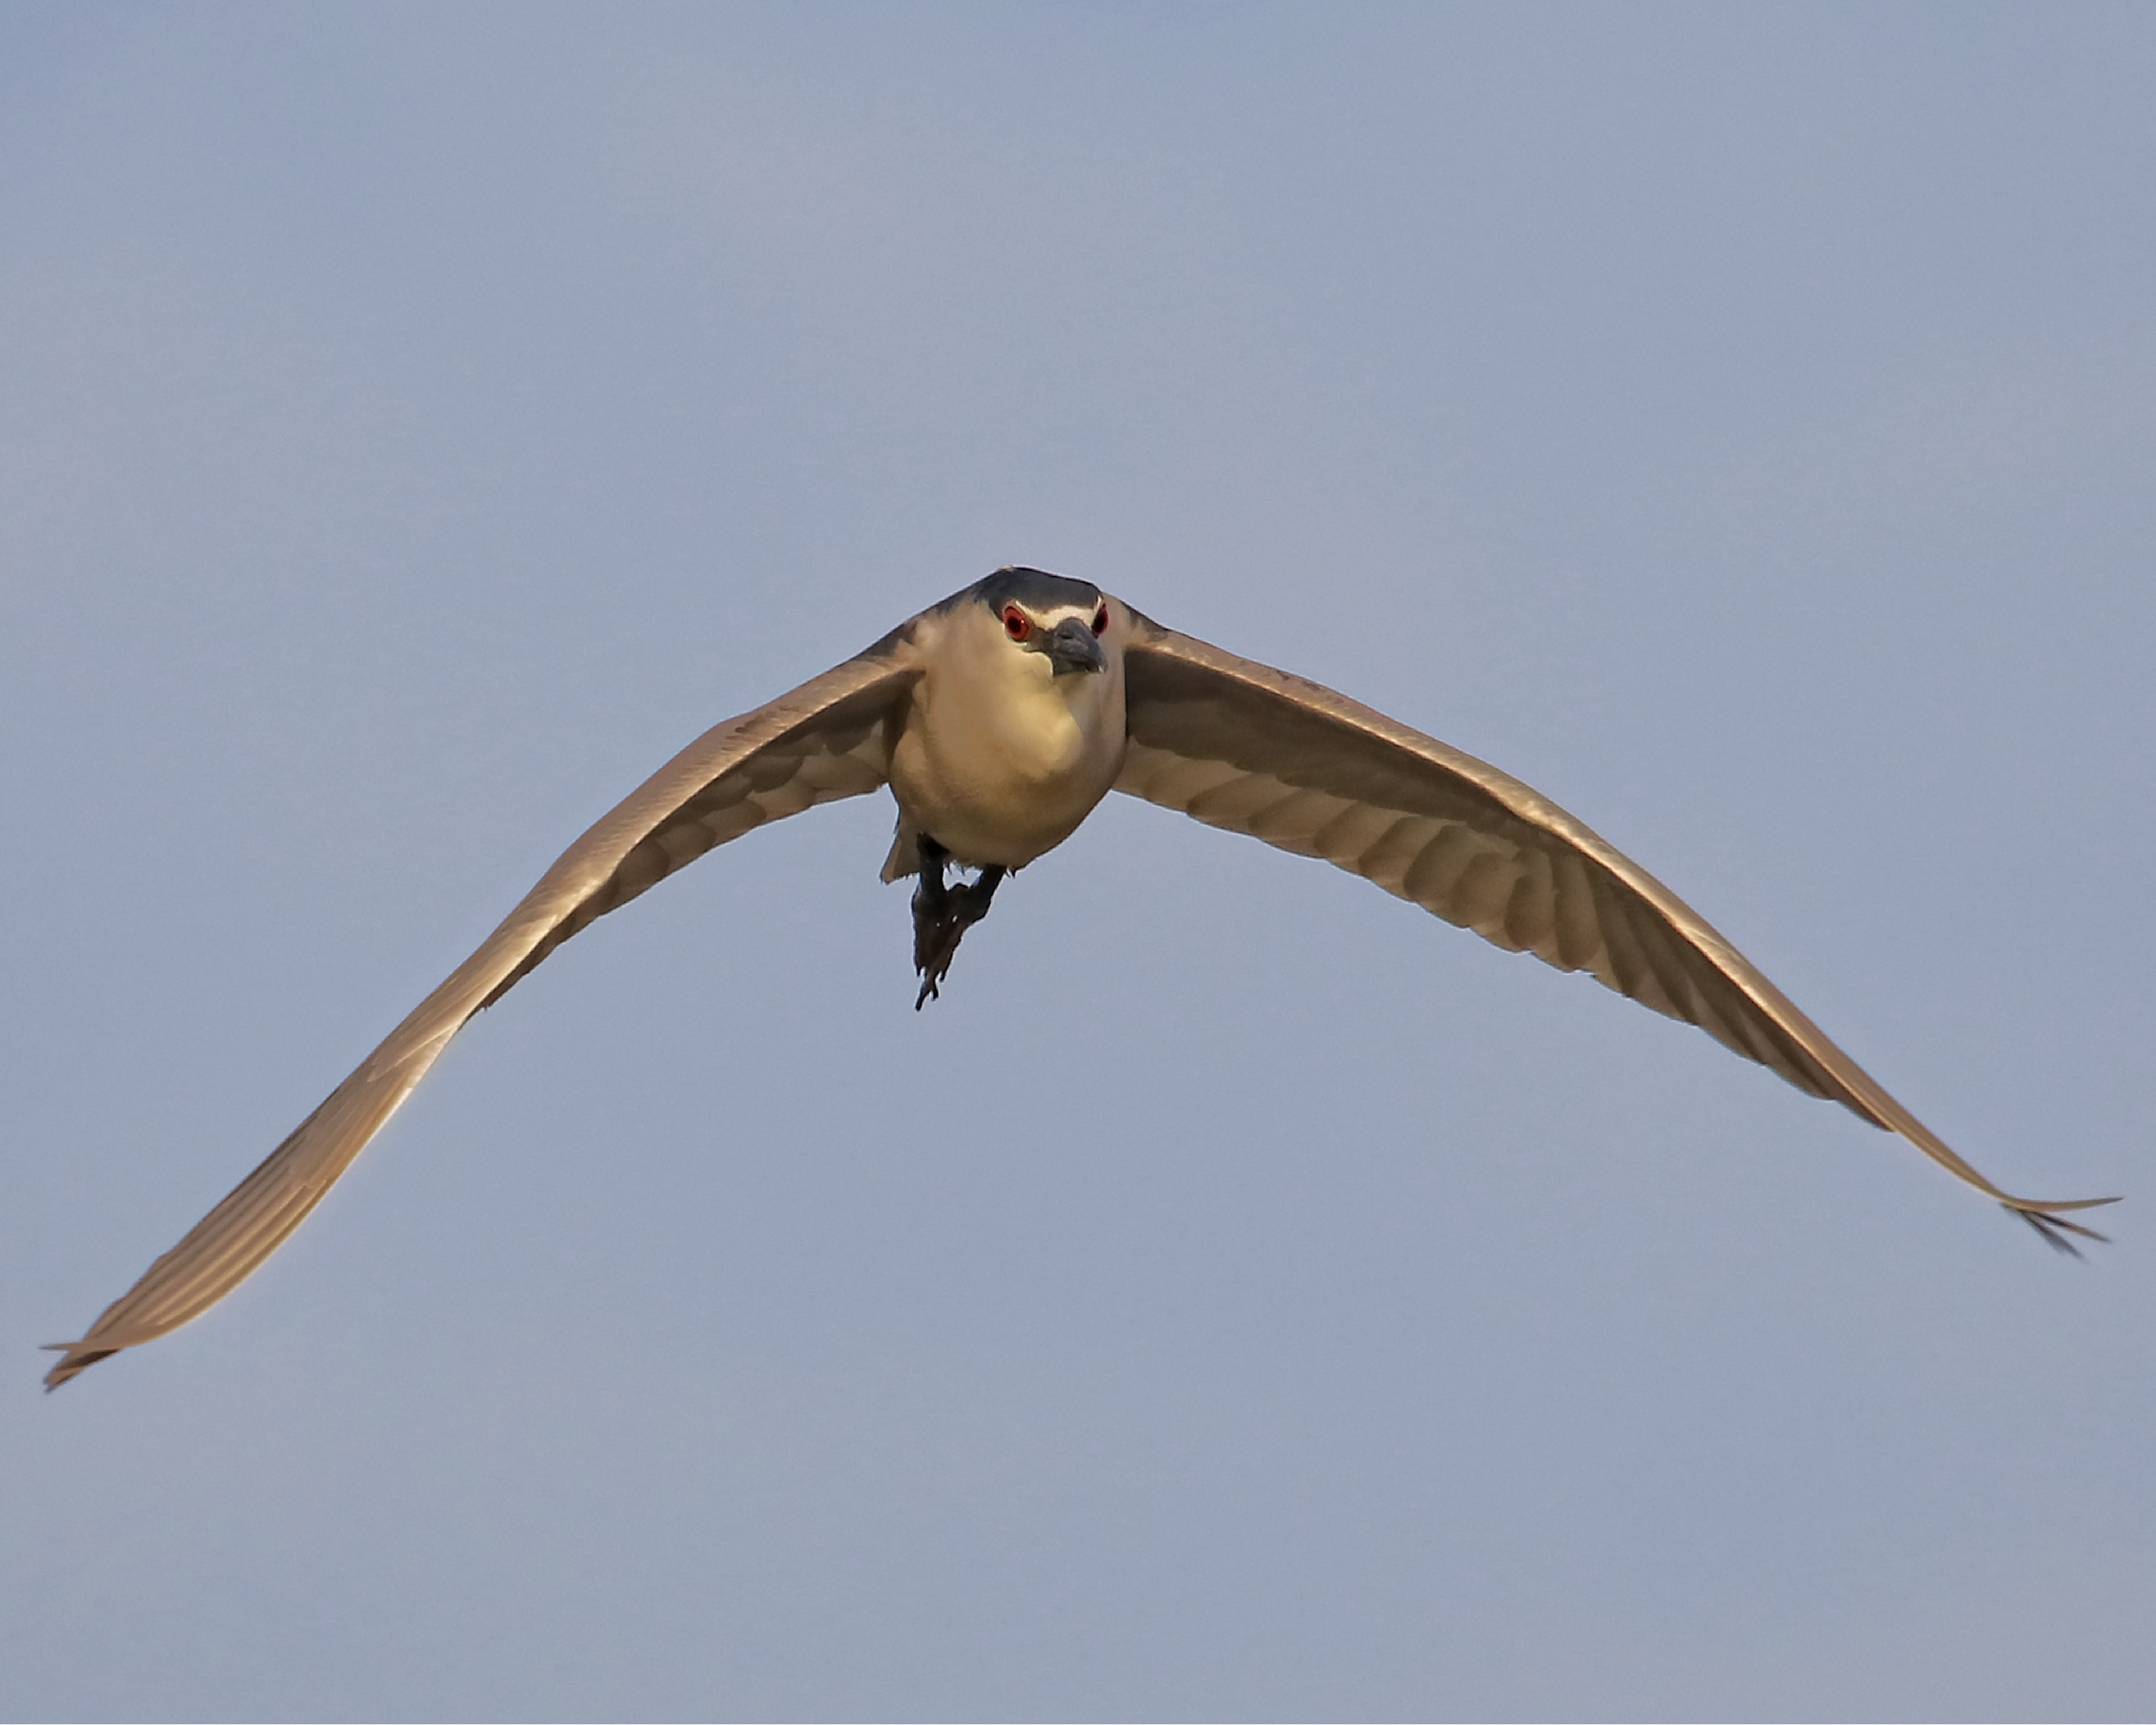 Then I spot the Black Crowned Night Heron taking the Red Eye flight home after a night on the marsh